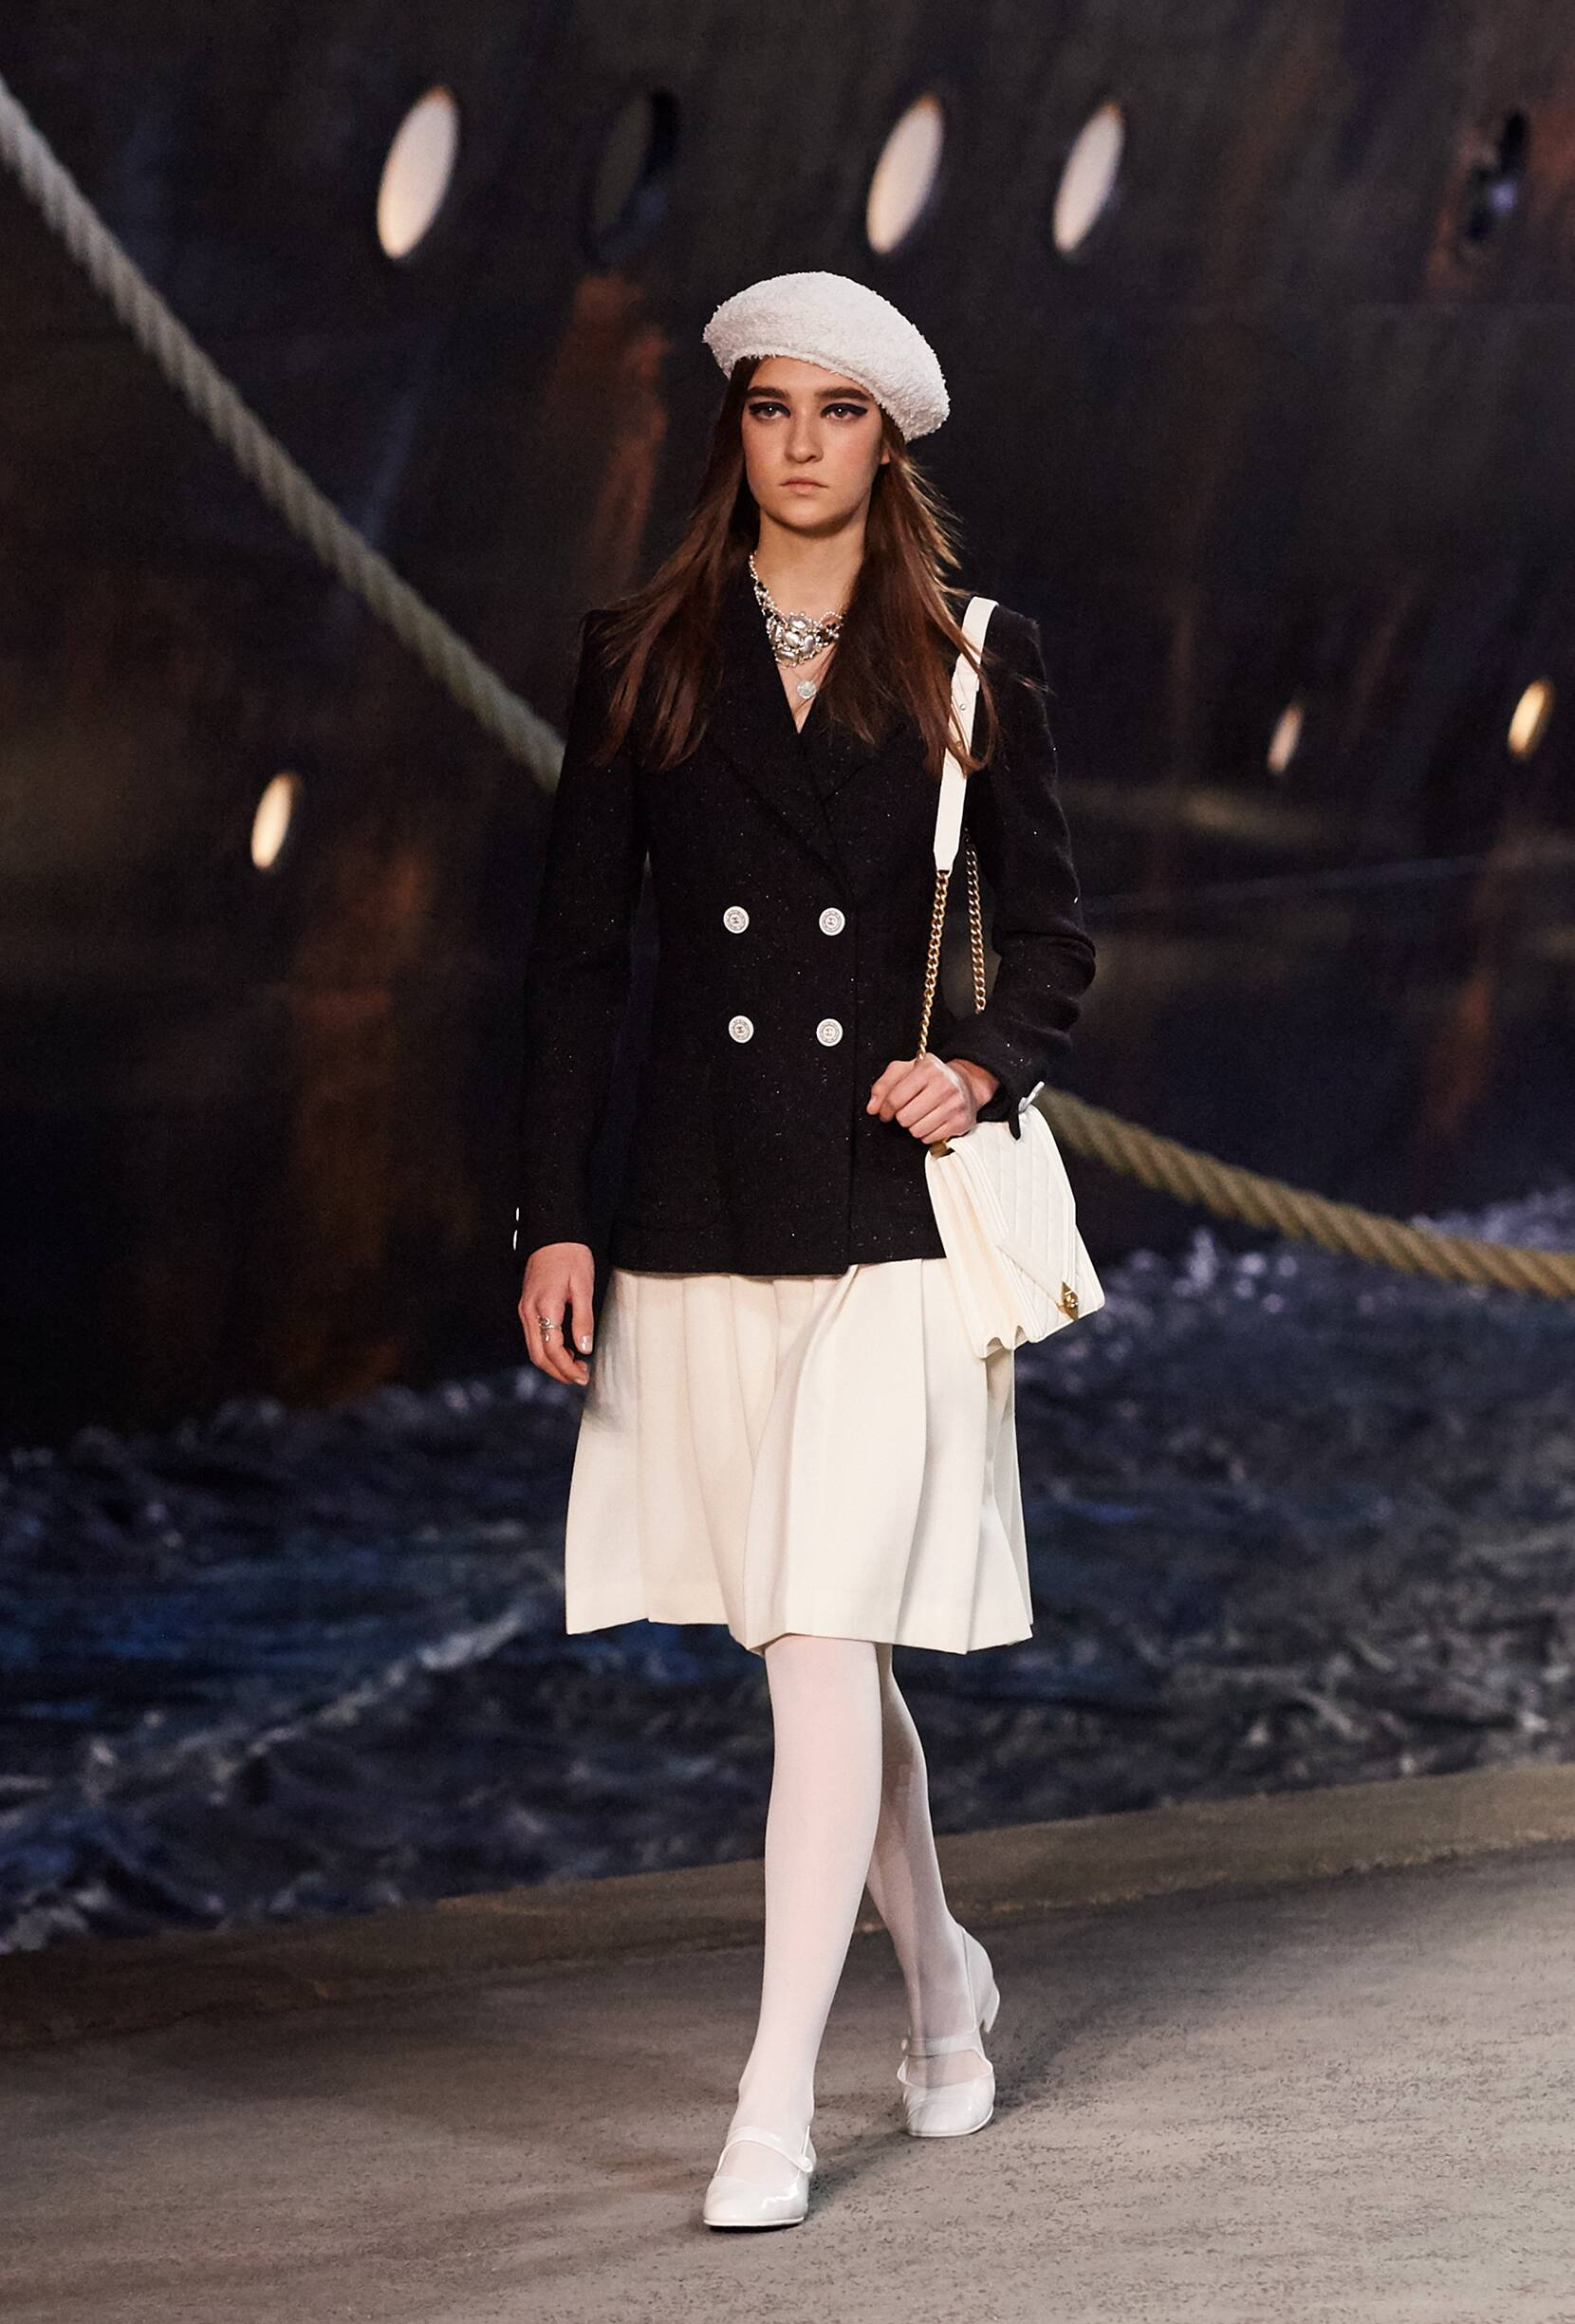 Chanel Cruise Collection 2018-19 Look 5 Paris